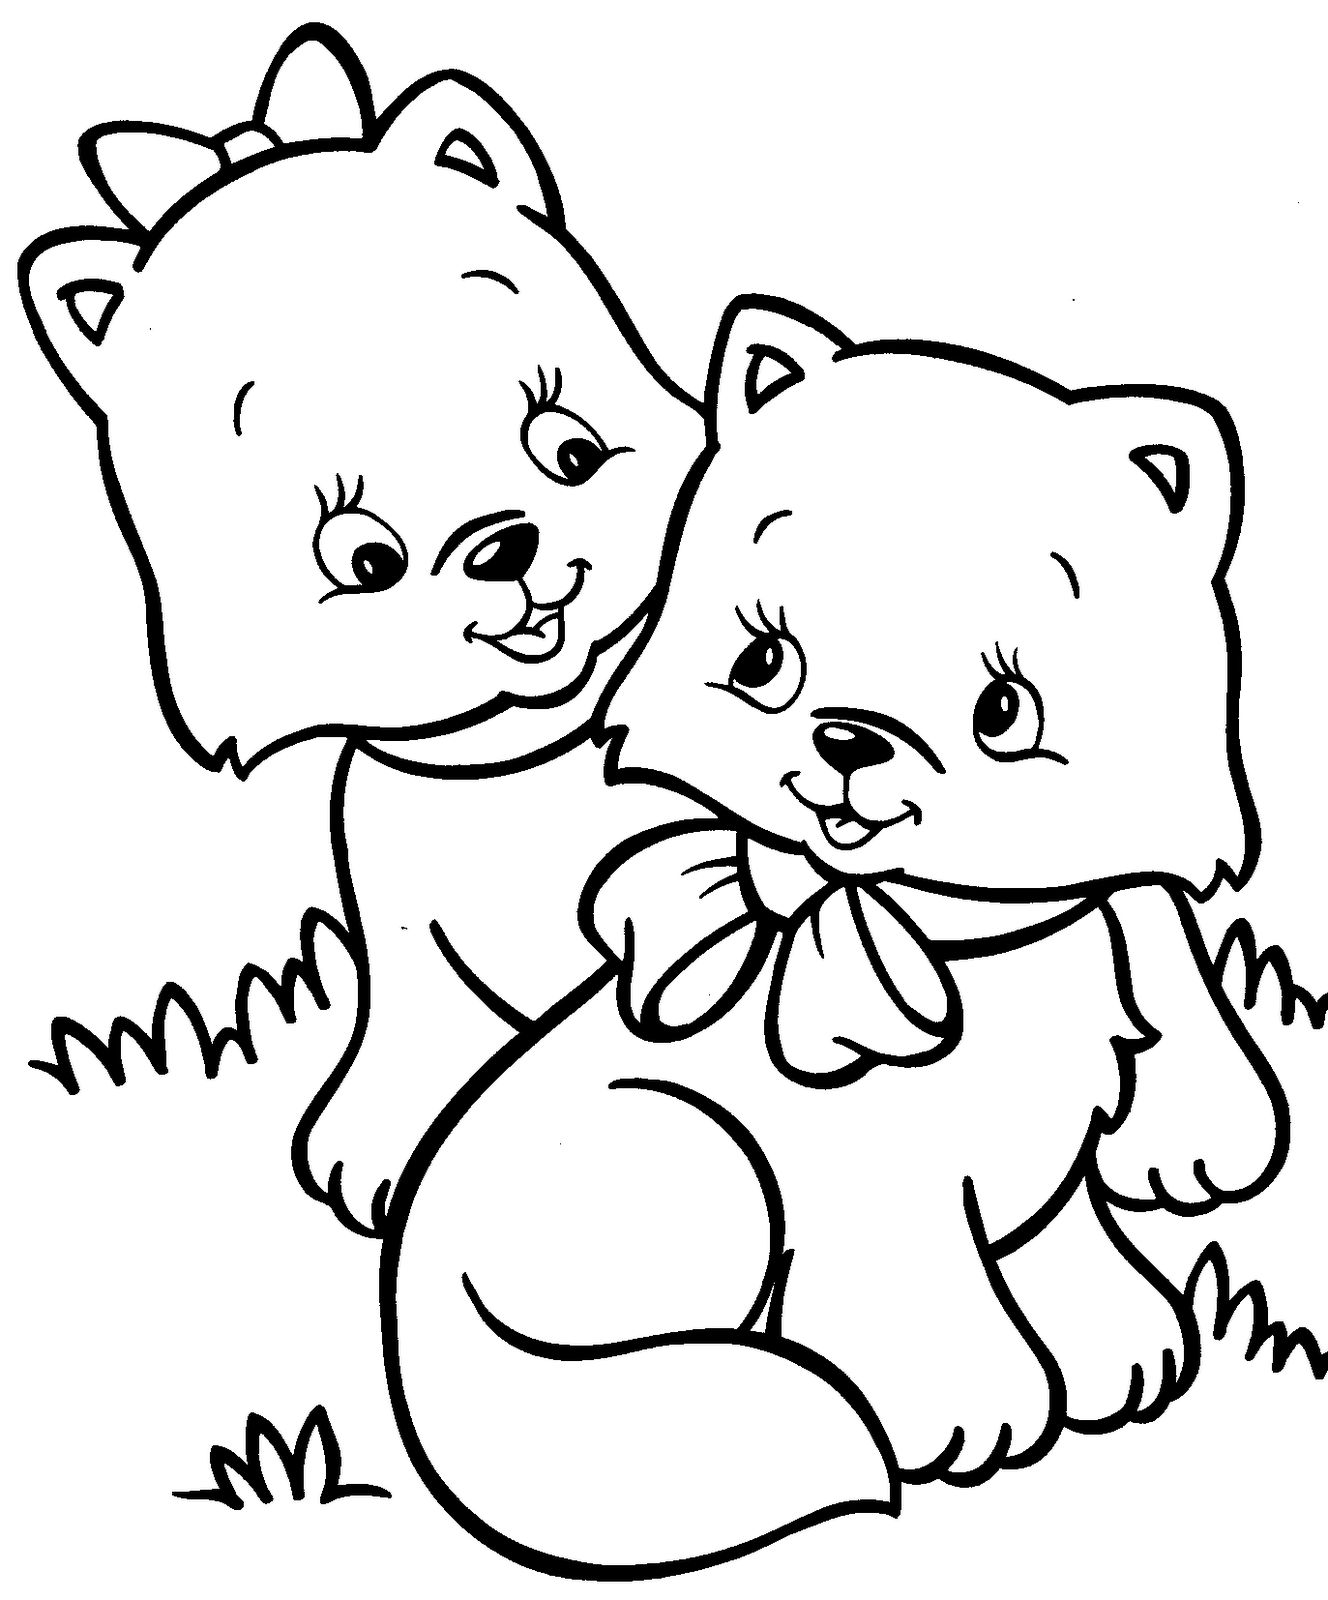 coloring pages of kittens free printable cat coloring pages for kids of pages kittens coloring